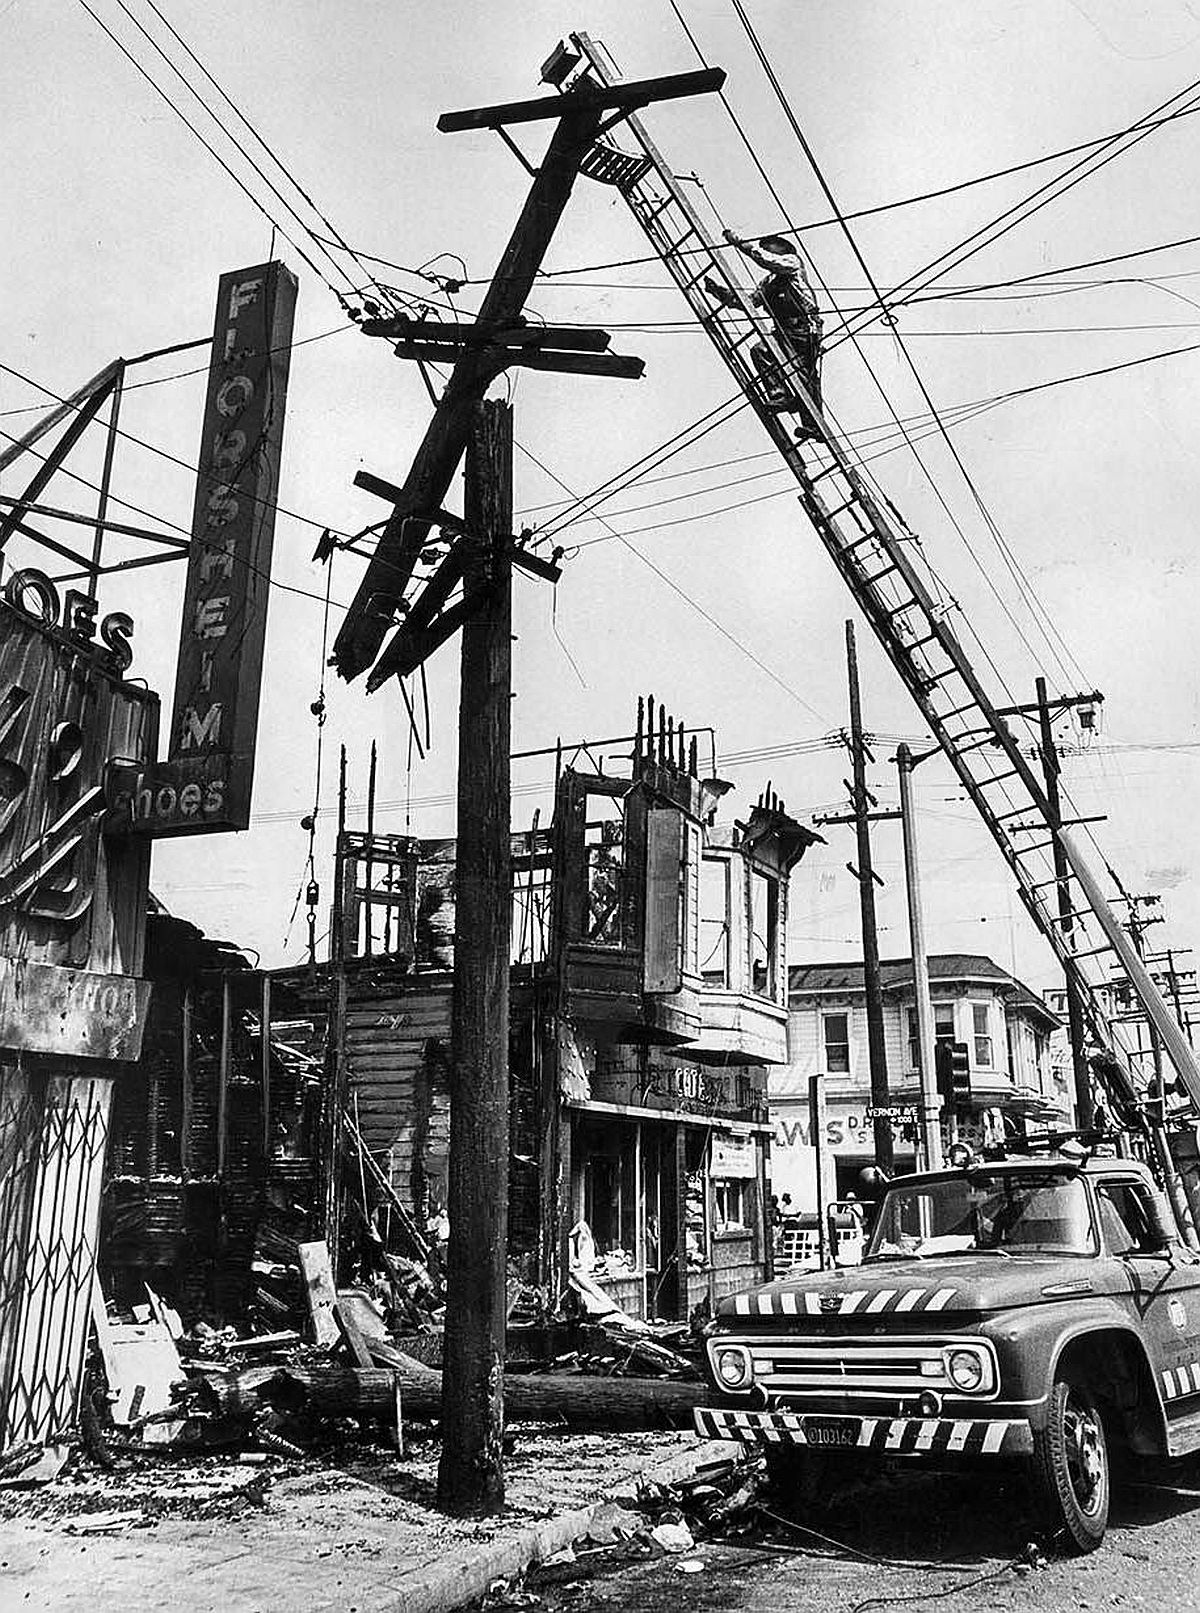 Aug. 17, 1965: Dept. of Water and Power lineman works among wires on poles burned and snapped apart by store fires at Central Ave. at Vernon.